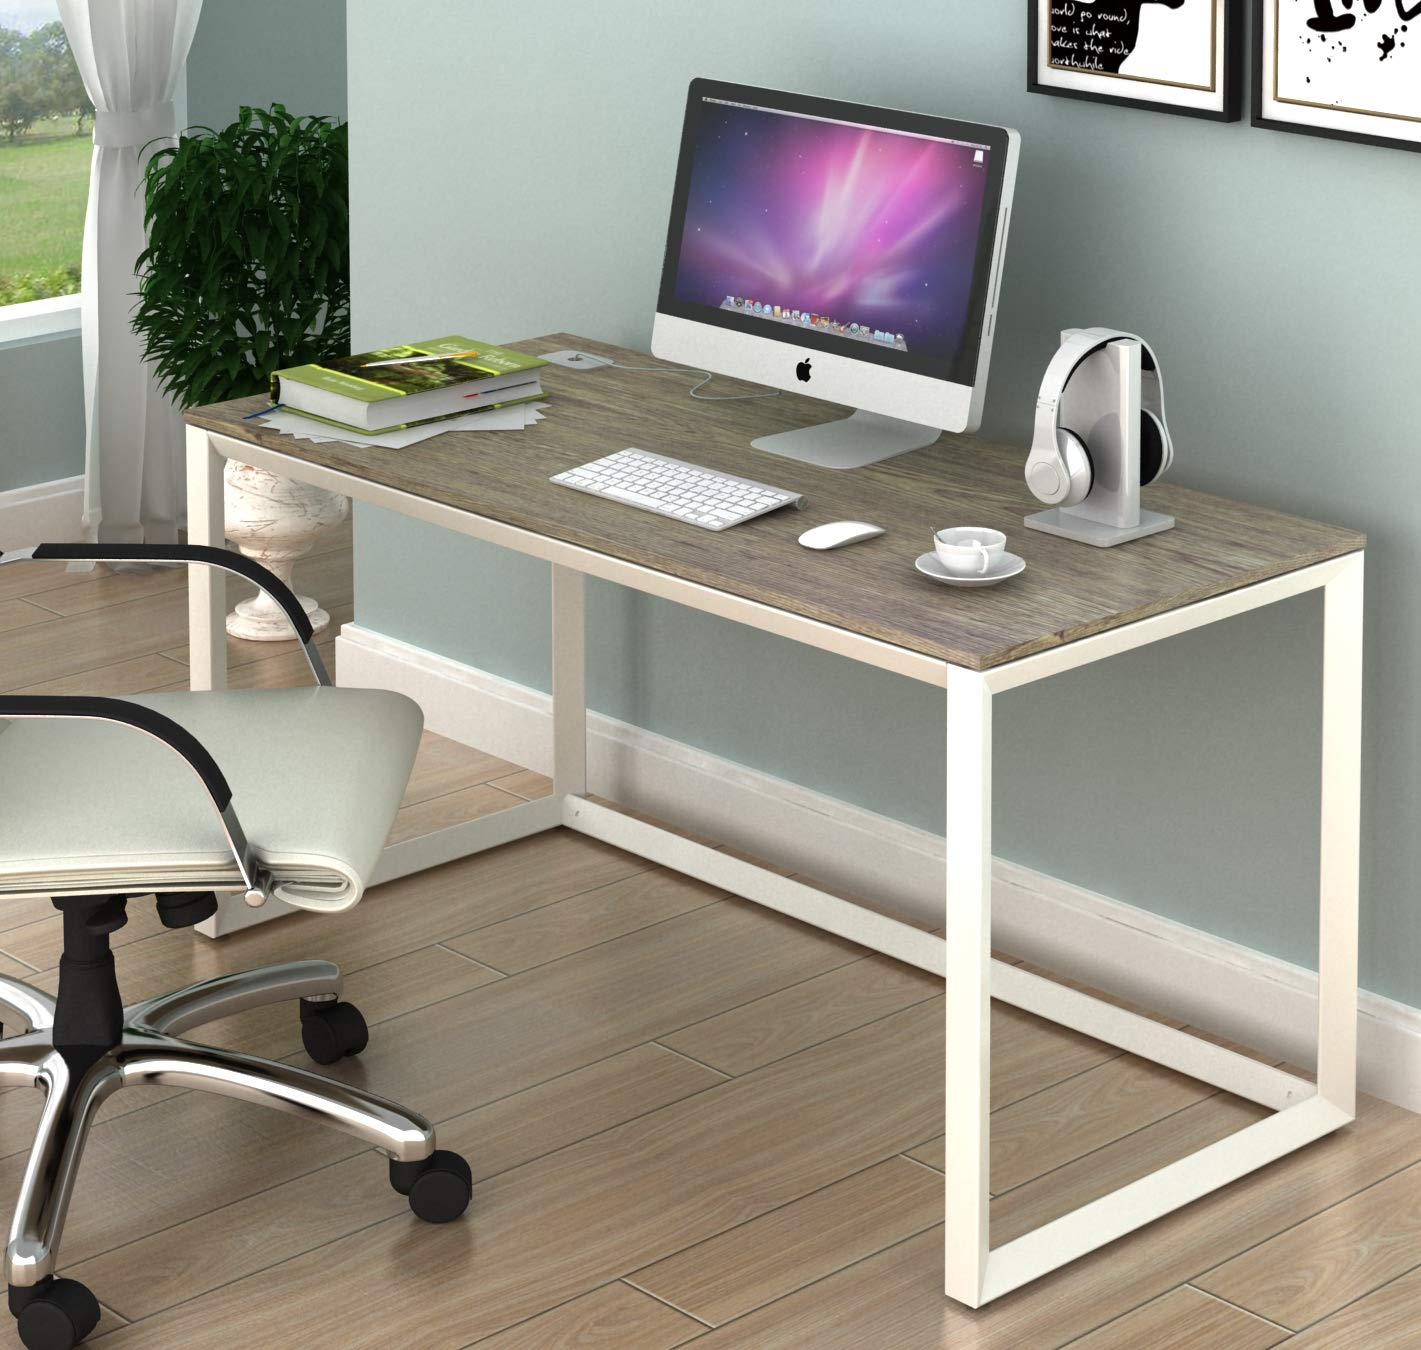 SHW Triangle-Leg Home Office Computer Desk by SHW